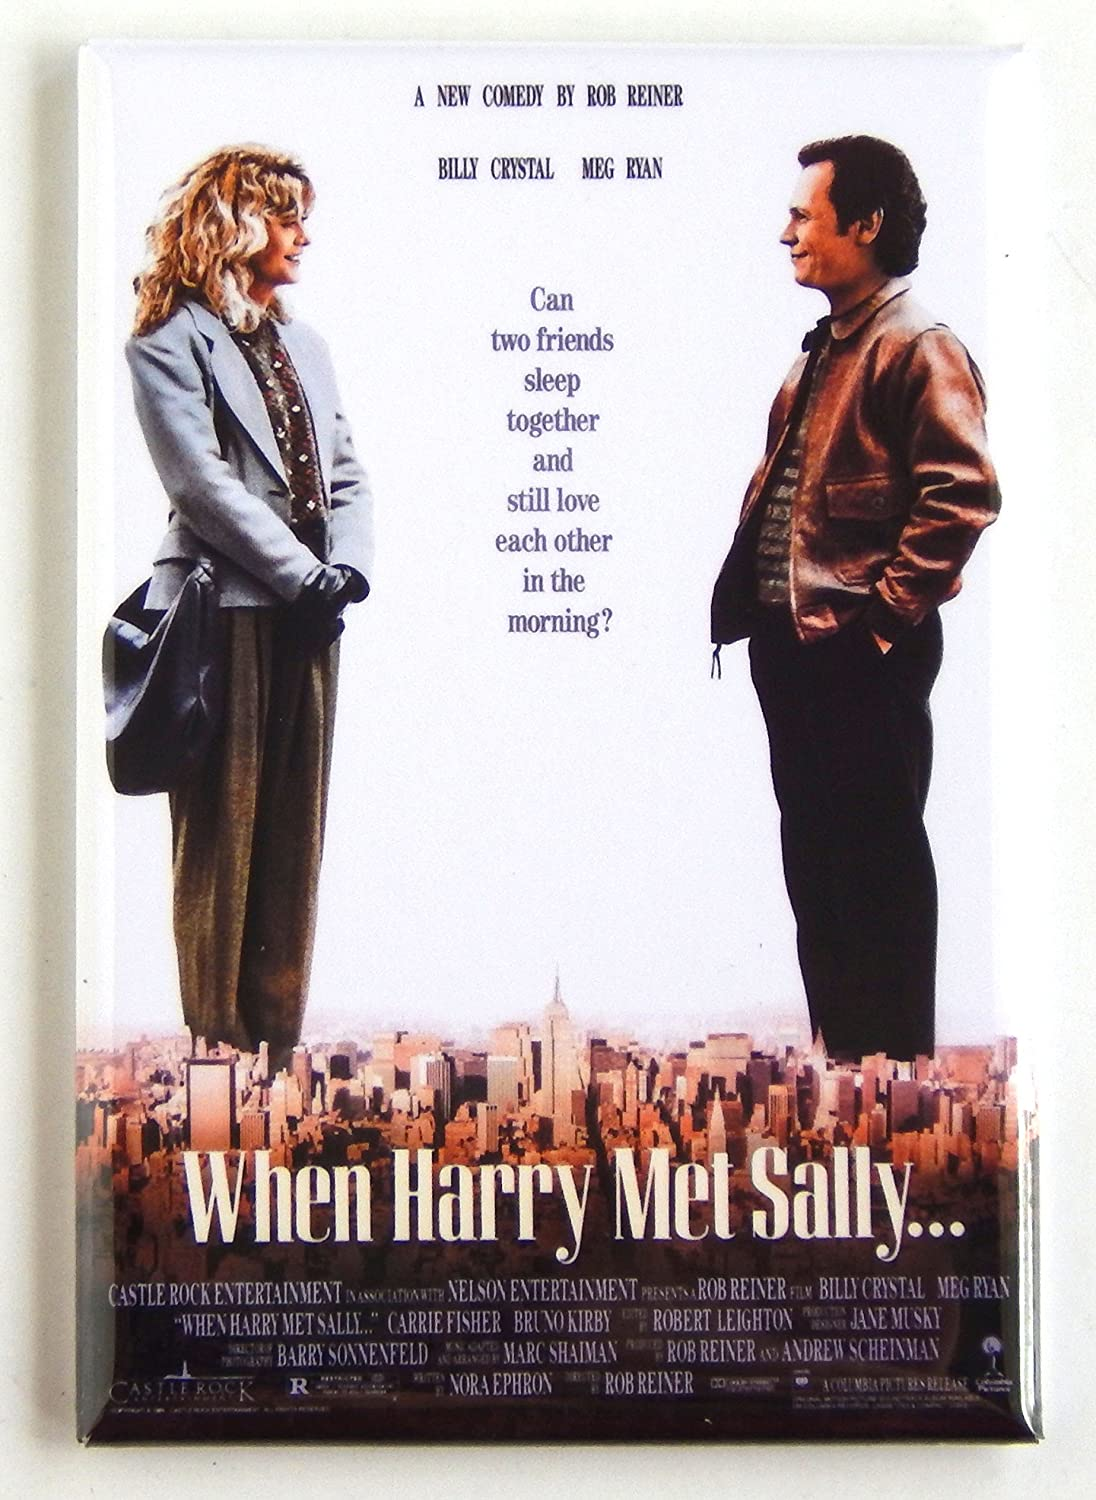 Amazon.com: When Harry Met Sally Movie Poster Fridge Magnet (2 x 3 ...